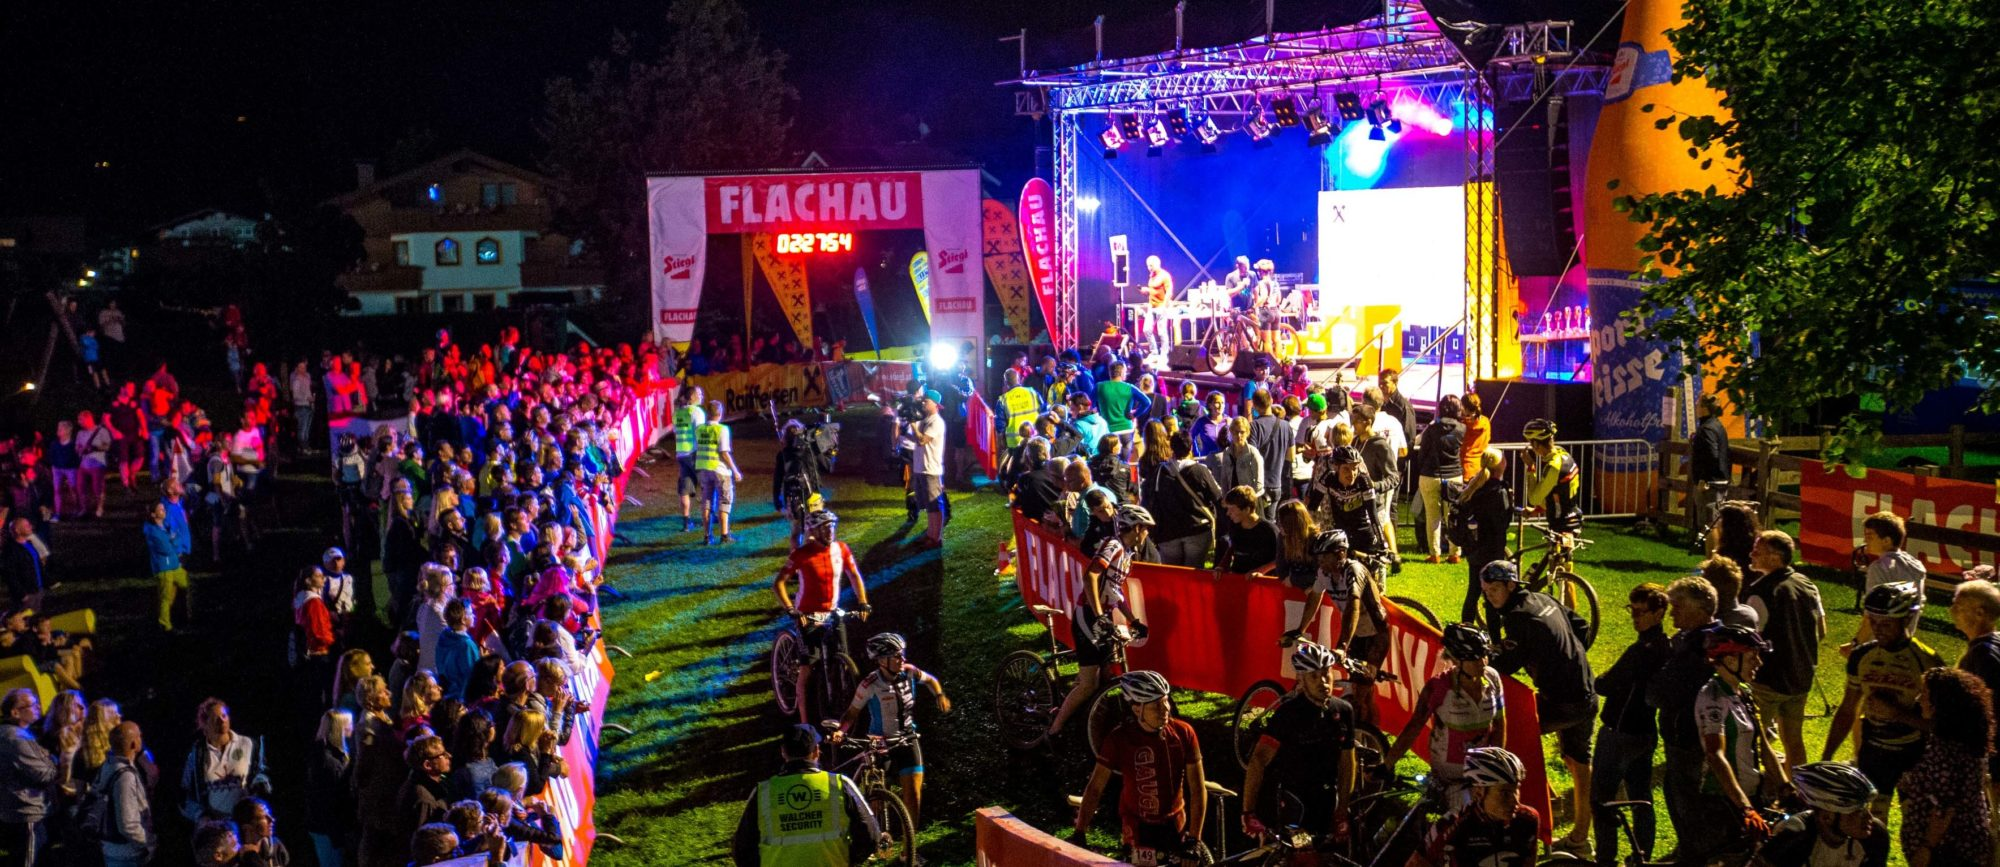 RACES2BE || BIKE NIGHT FLACHAU 10.-12.08.2018